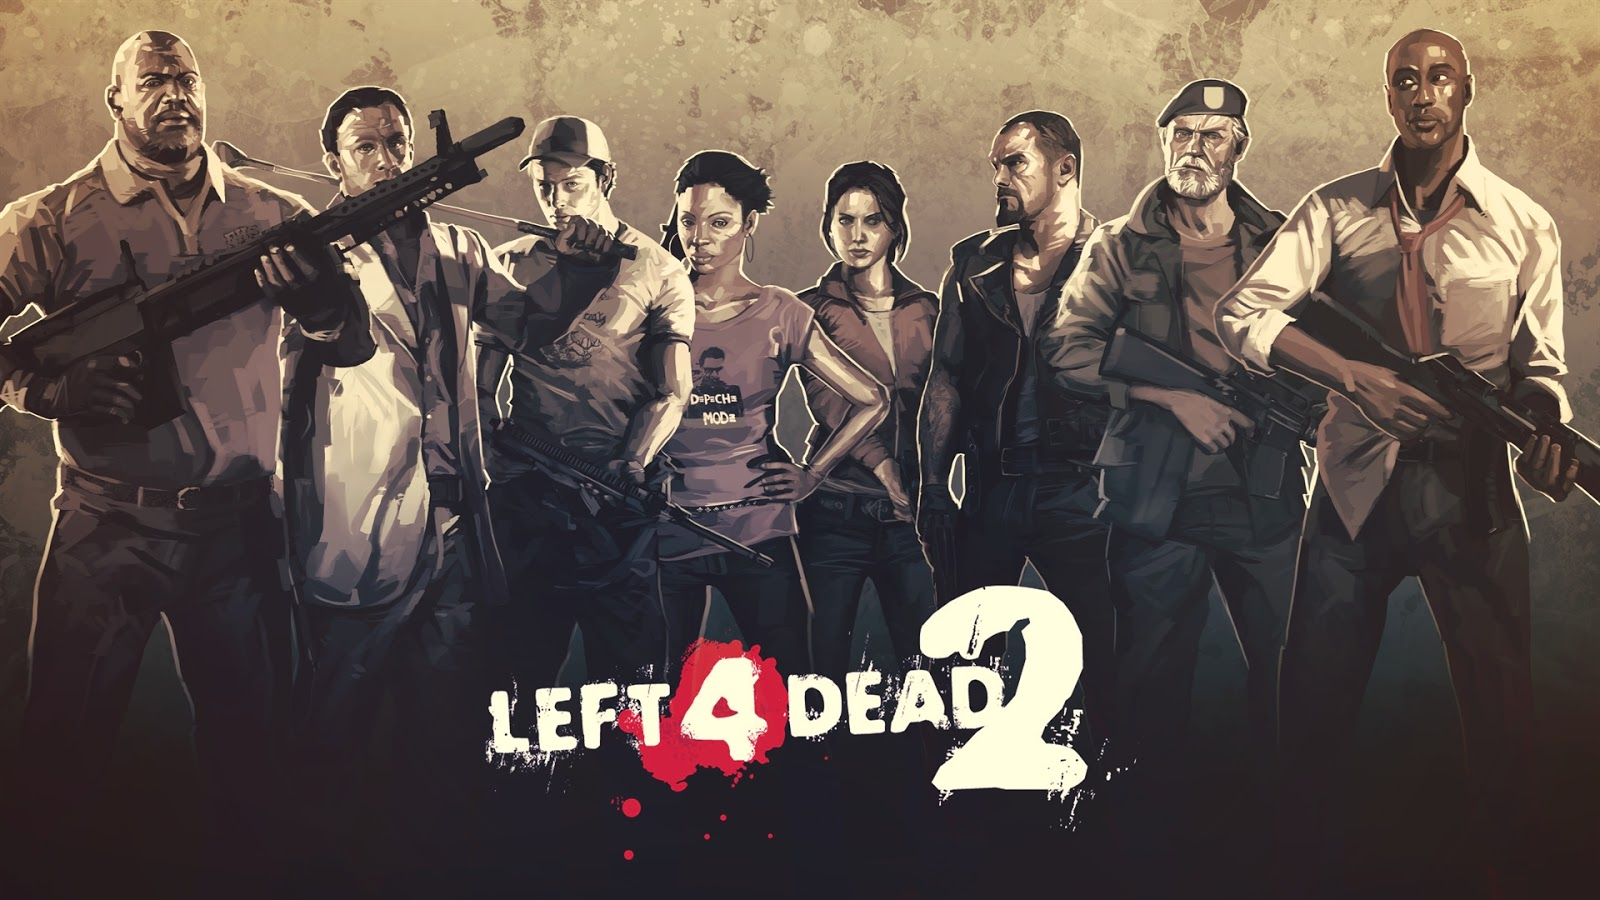 How to download left 4 dead 2 free for pc fullgame youtube.